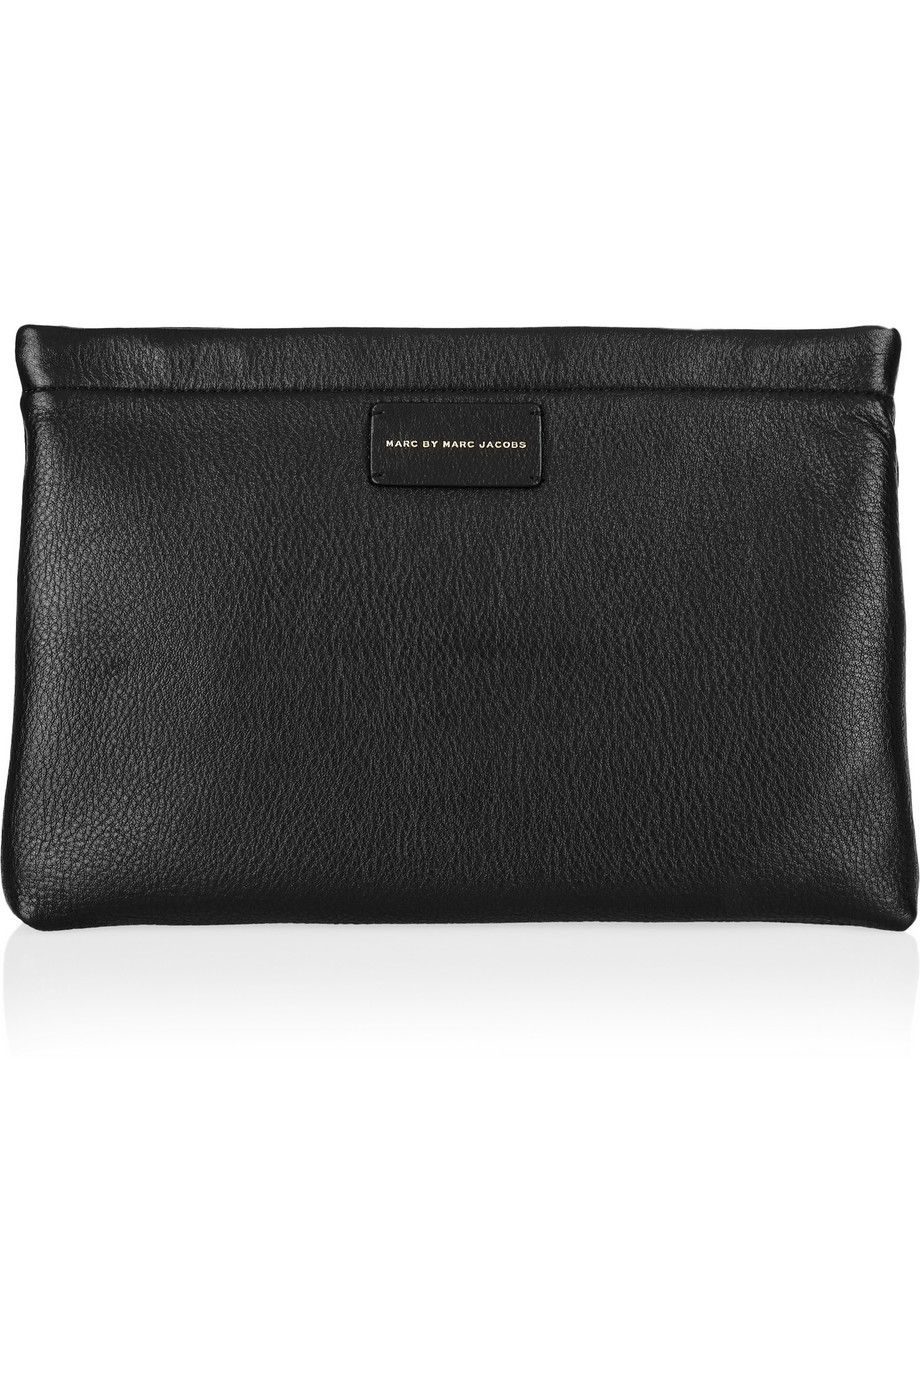 Textured-leather Wallet - Black Marc Jacobs I3ZCi3A9